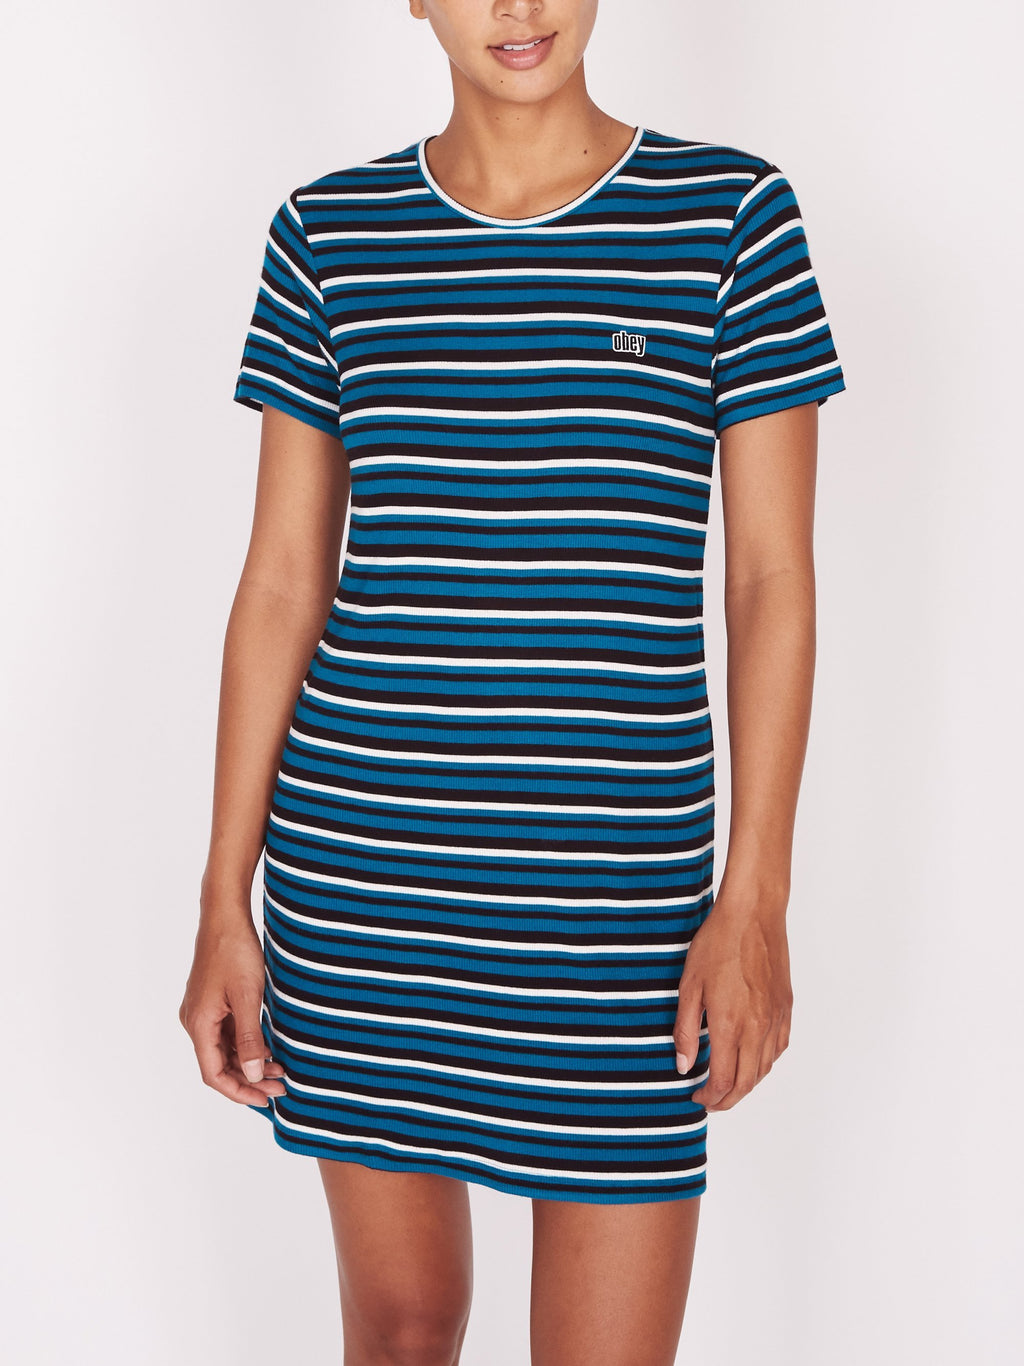 SOUTH SHORE DRESS